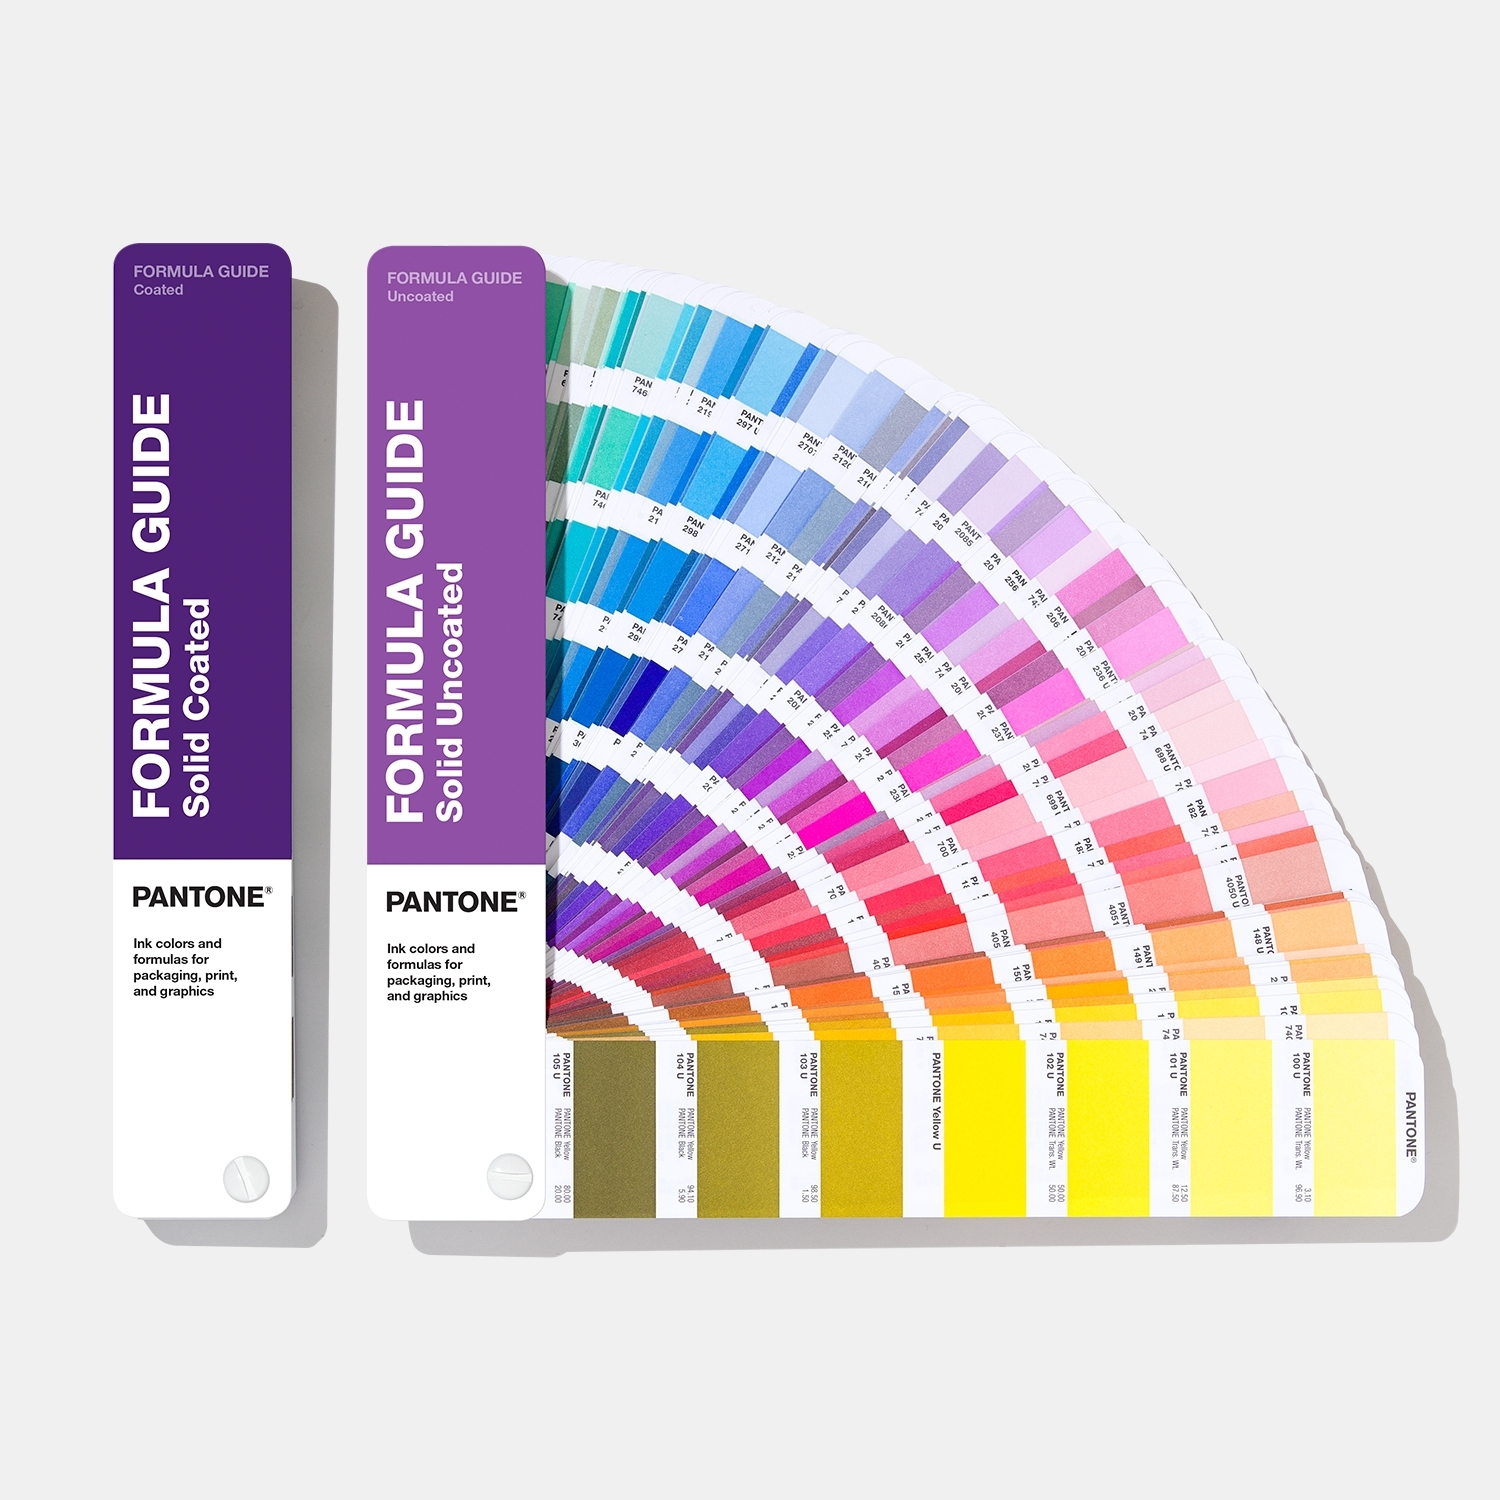 Limited Edition Pantone Formula Guide Color Of The Year 2018